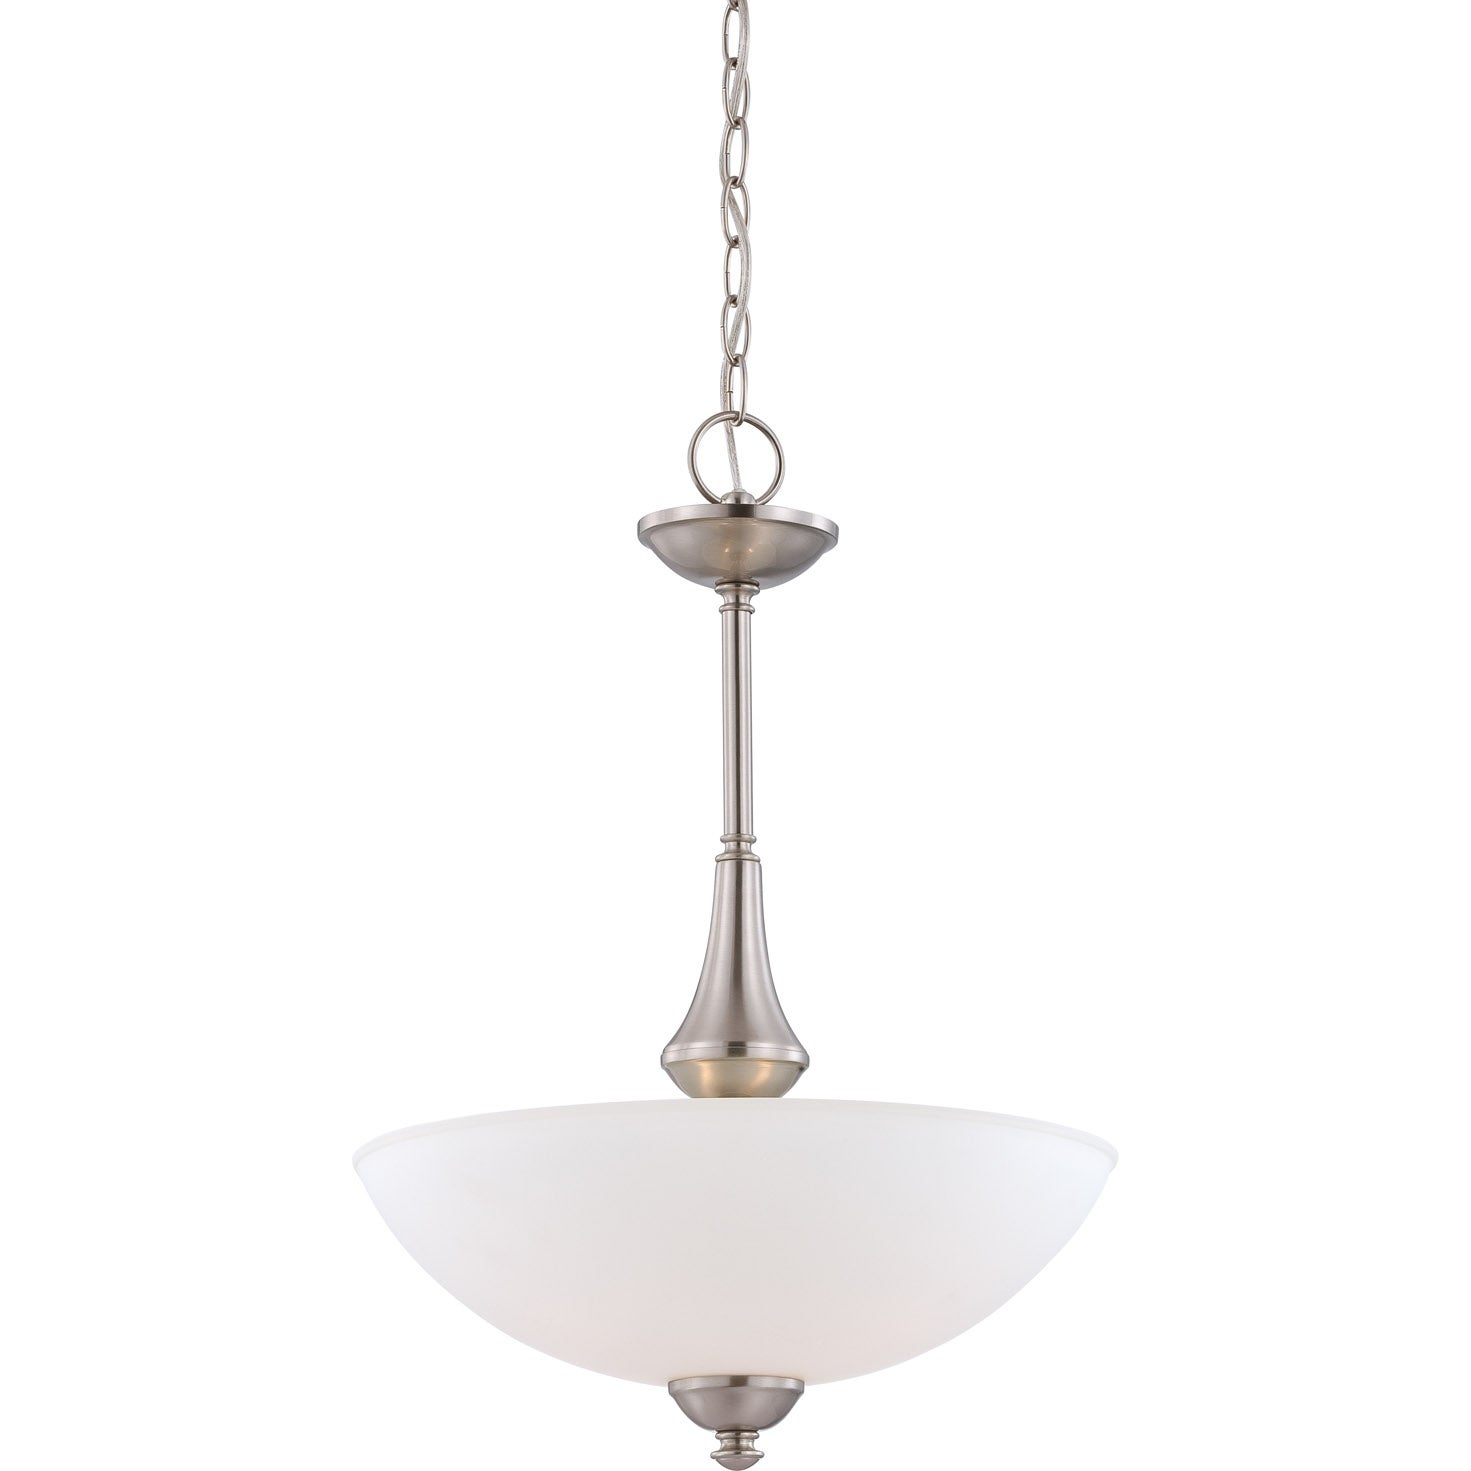 Nuvo 'Patton' 3-light Brushed Nickel Pendant